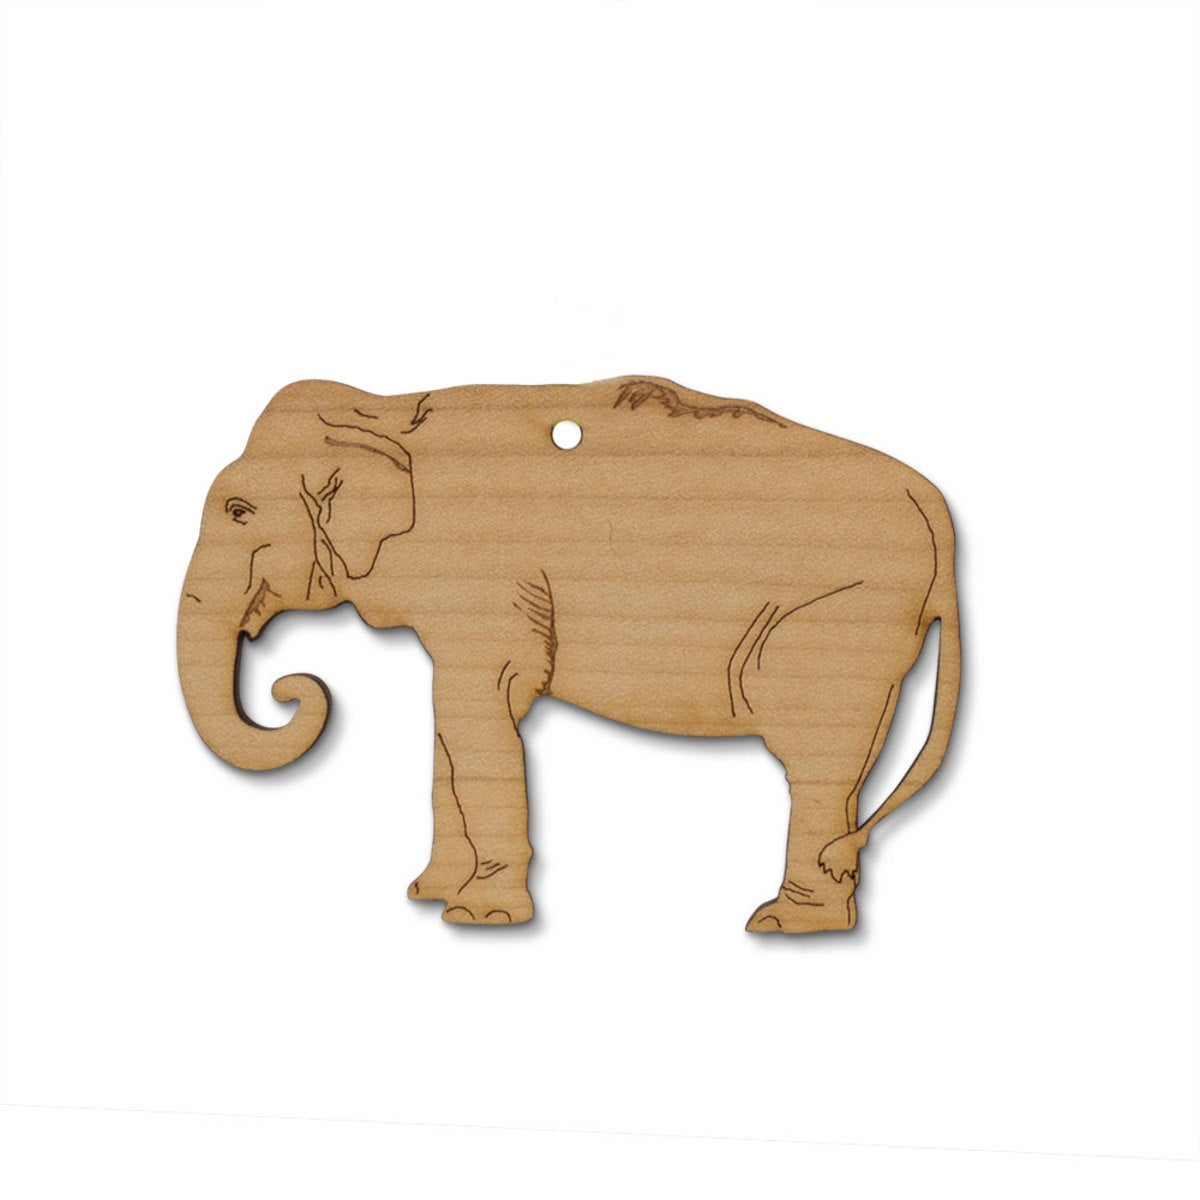 Olive Wood Laser-Cut Ornament - Elephant